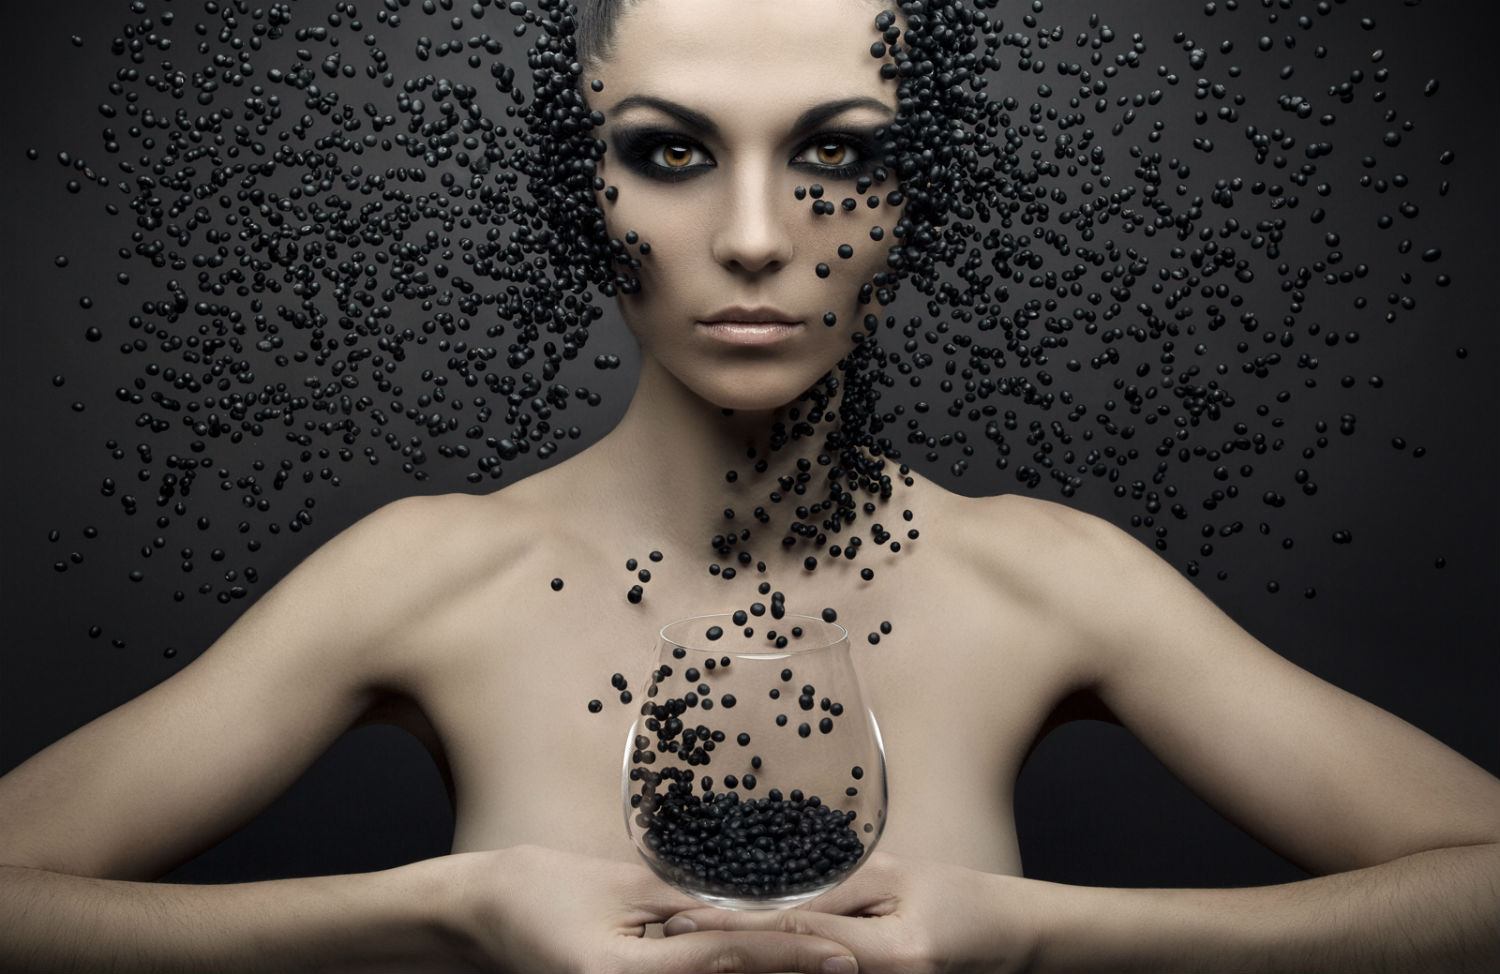 evgeni kolesnik photography surreal portraits ukraine model black beads